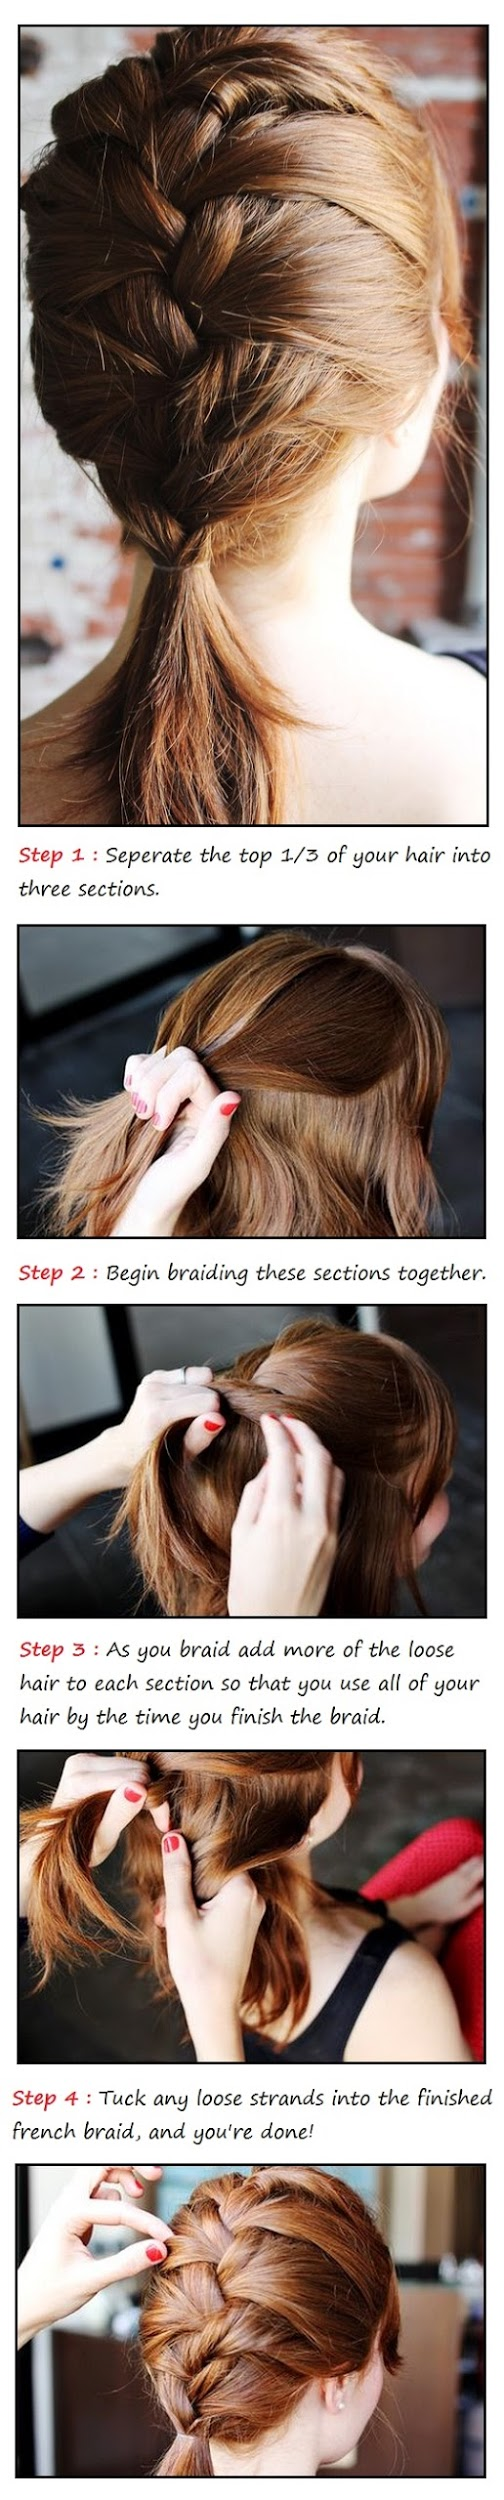 How to french braid your hair | Beauty tutorials